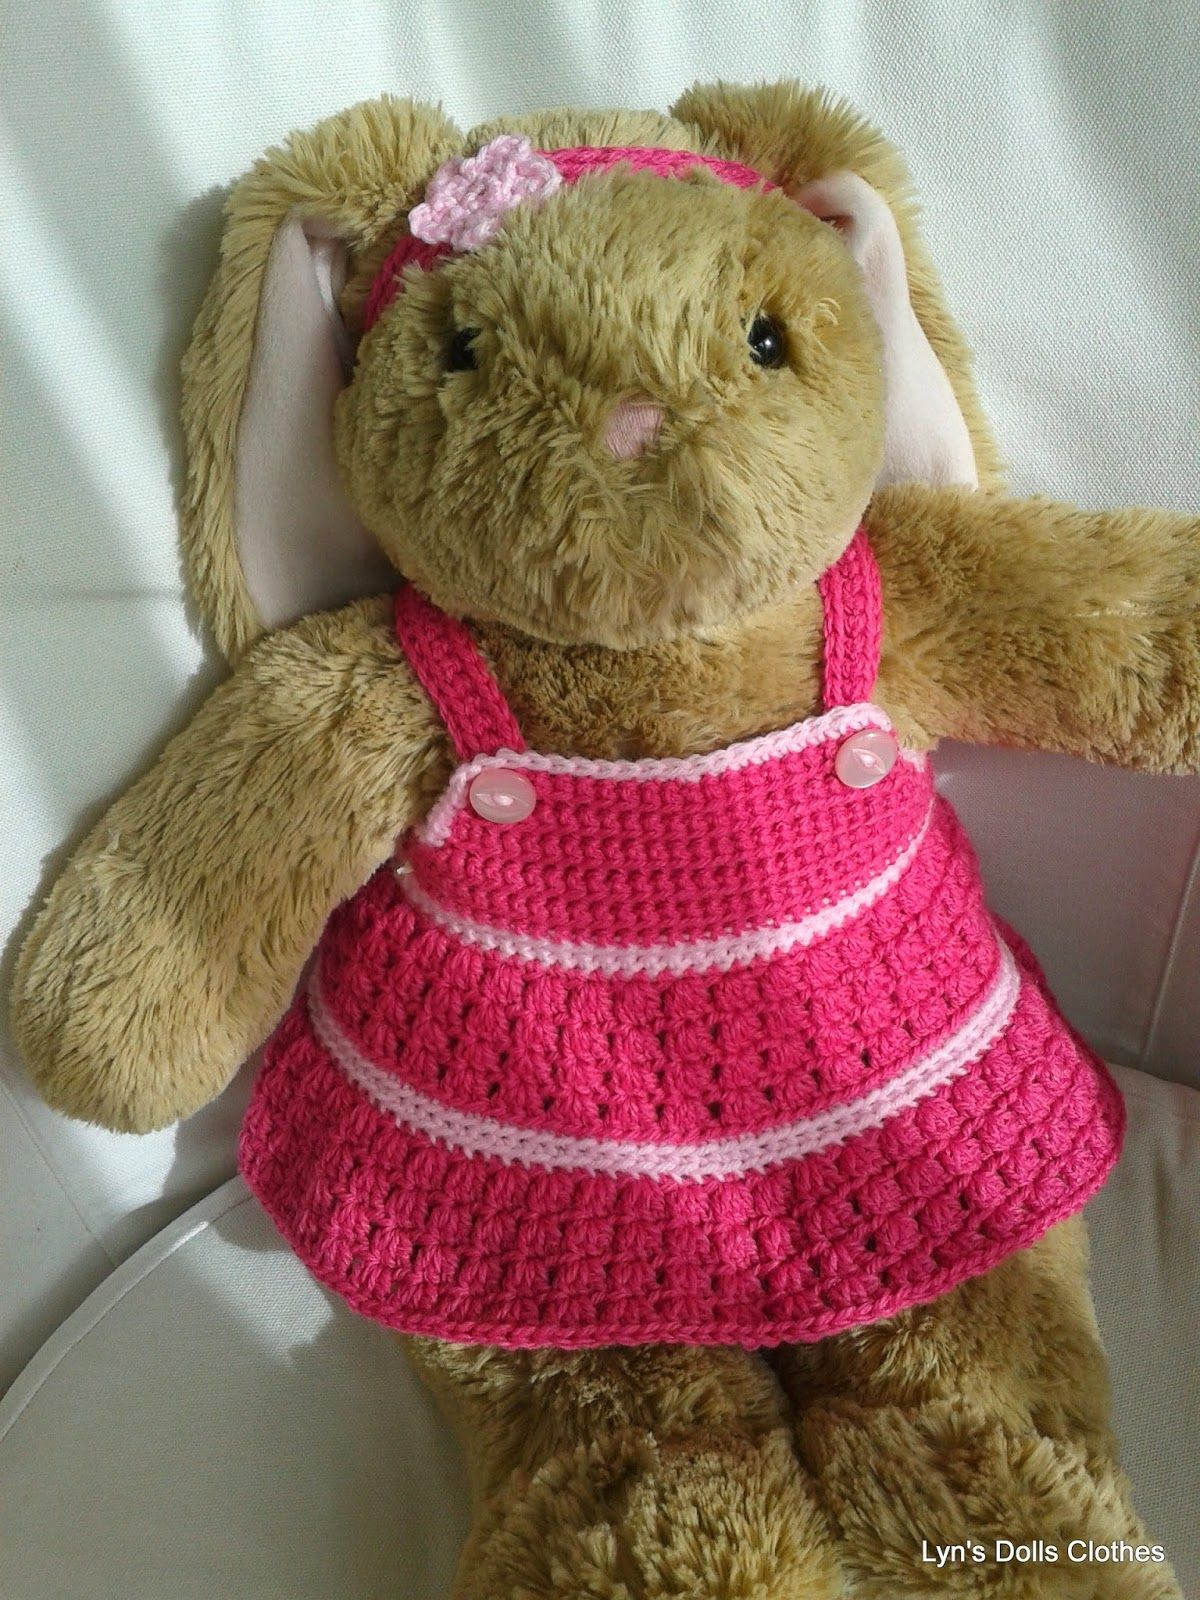 Lyn\'s Dolls Clothes: Teddy bear crochet dress and headband | Build-A ...